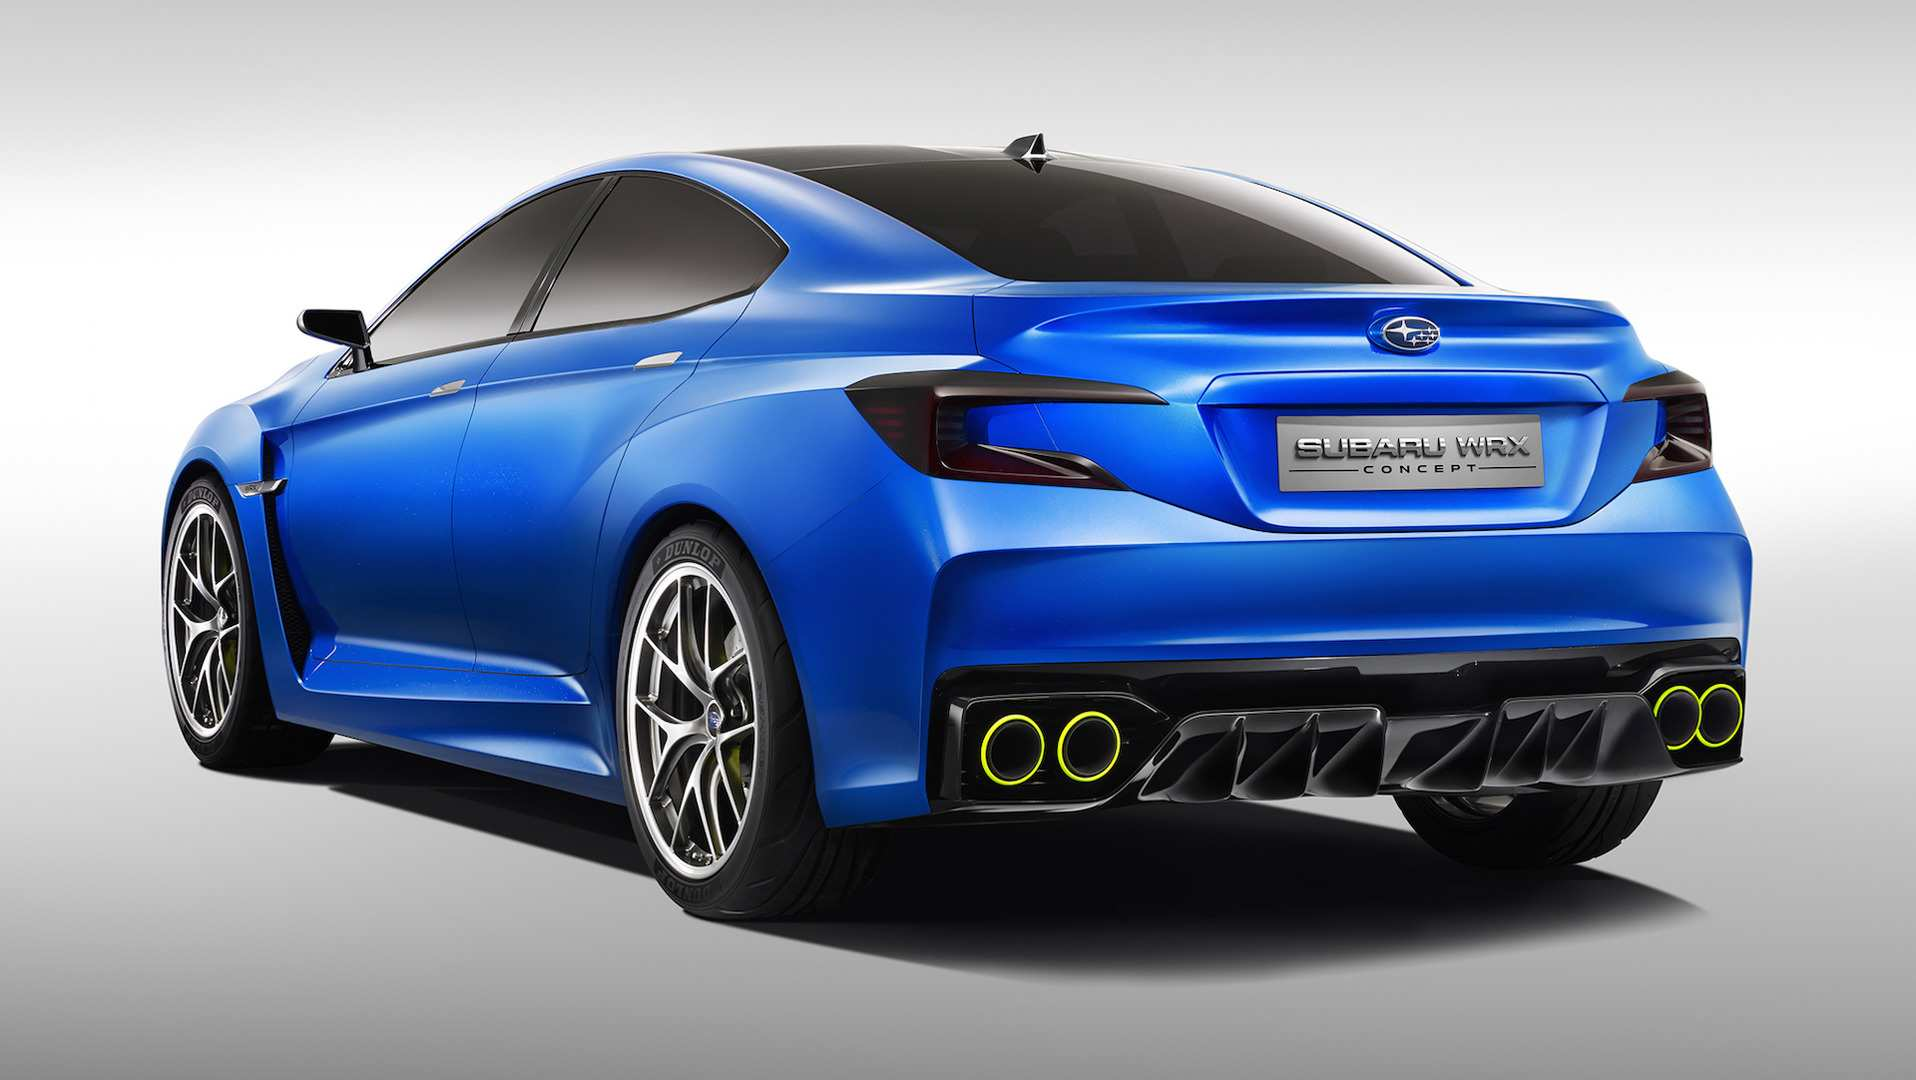 40 All New Subaru Sti 2020 Concept Concept